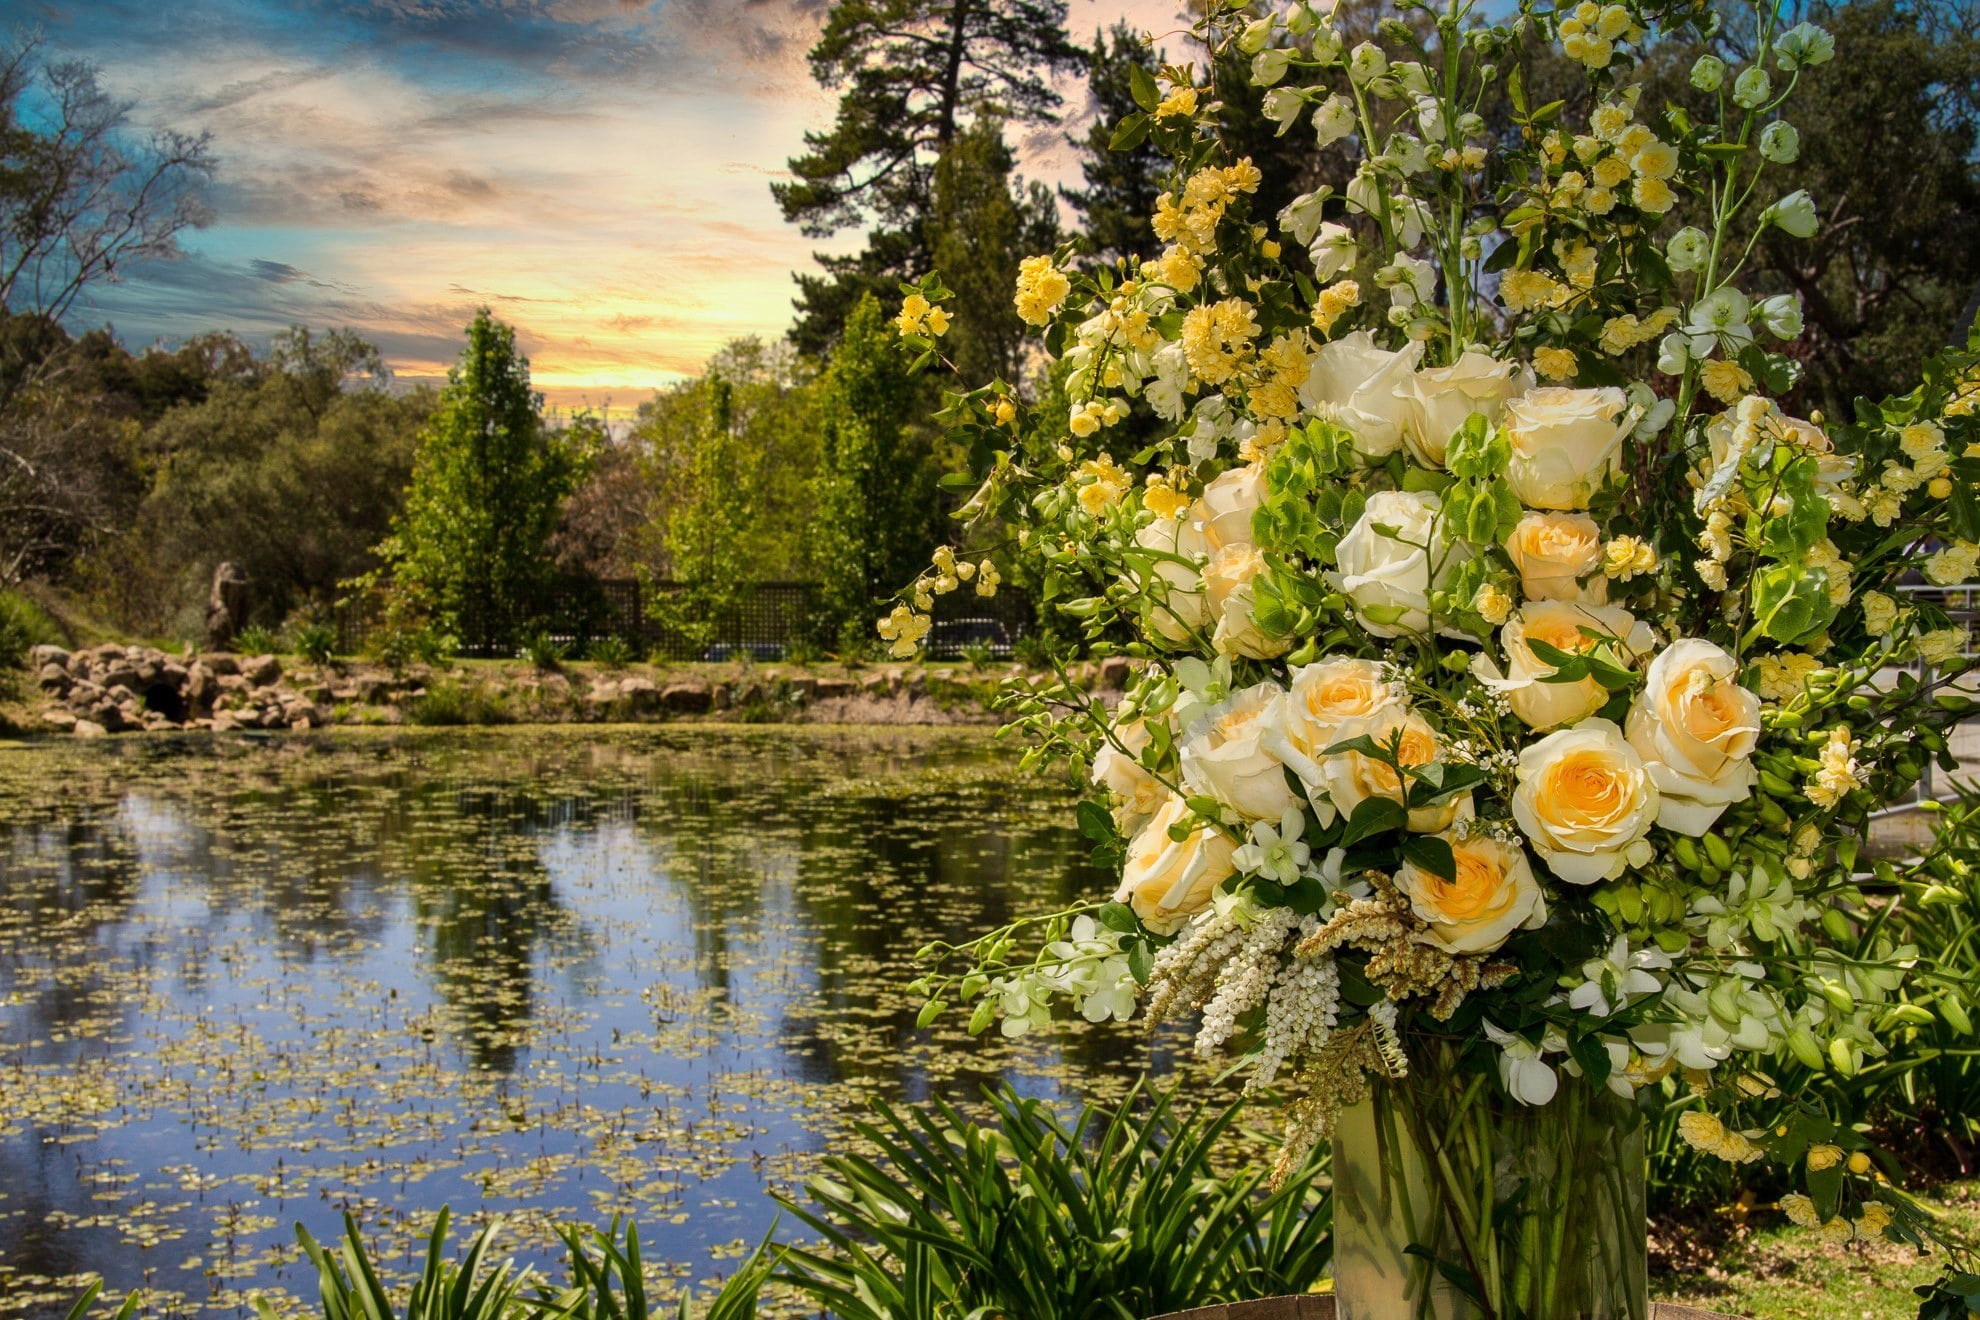 Houghton Lake with Flowers